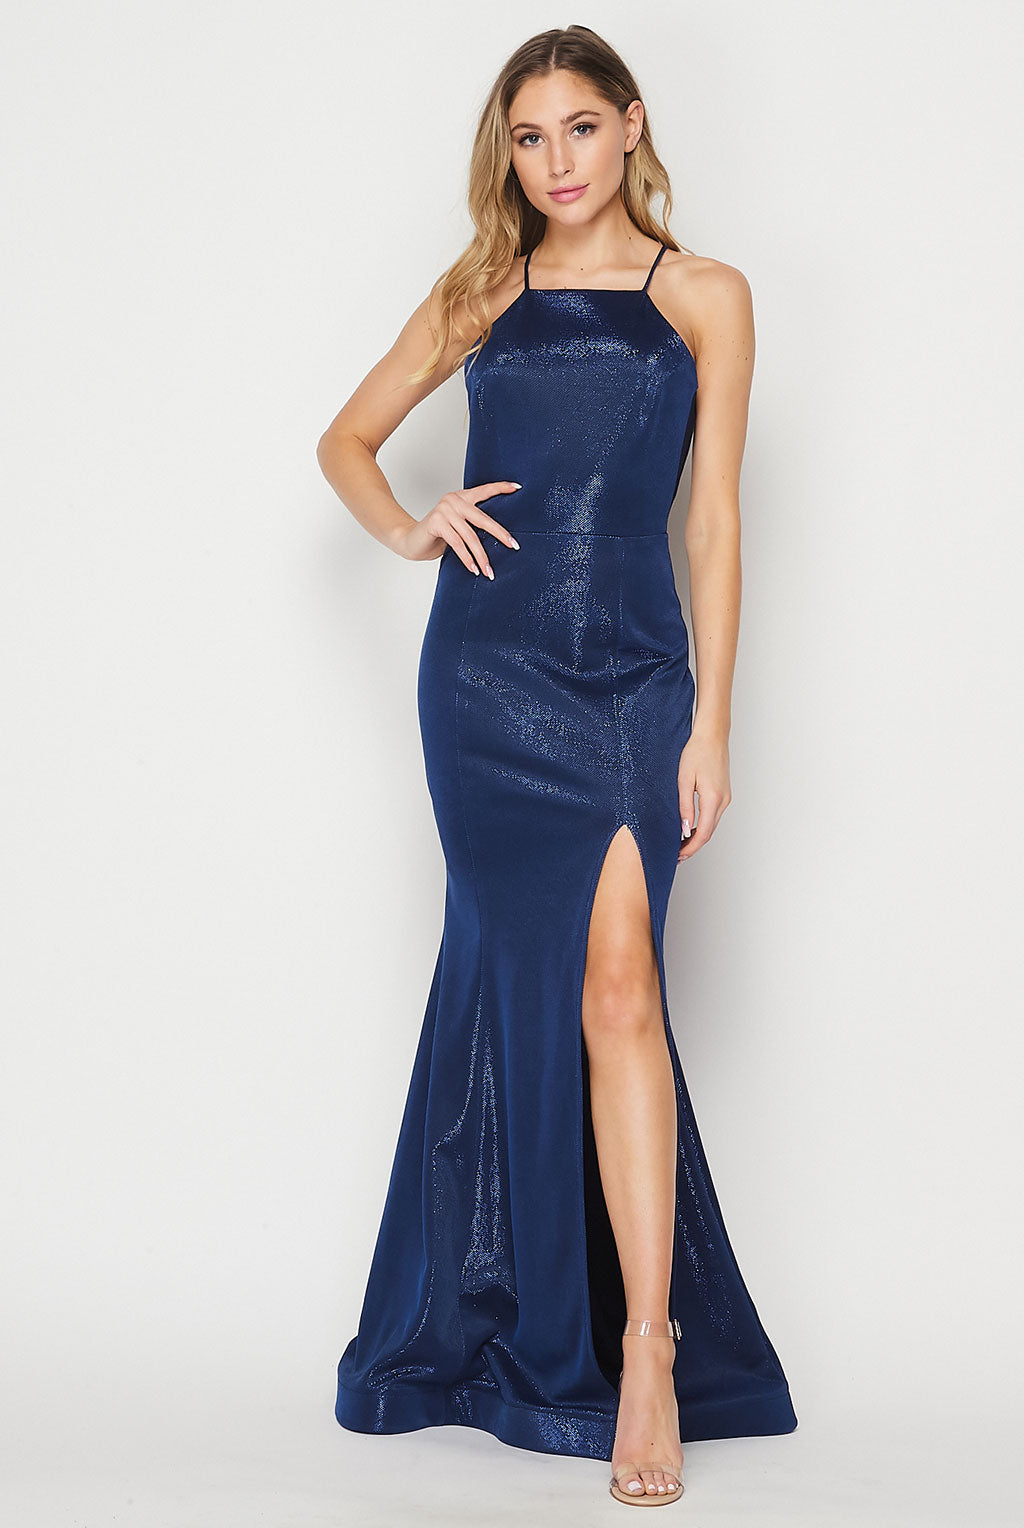 Teeze Me | High Neck With Slit Iridescent Glitter Long Gown | Royal/Navy